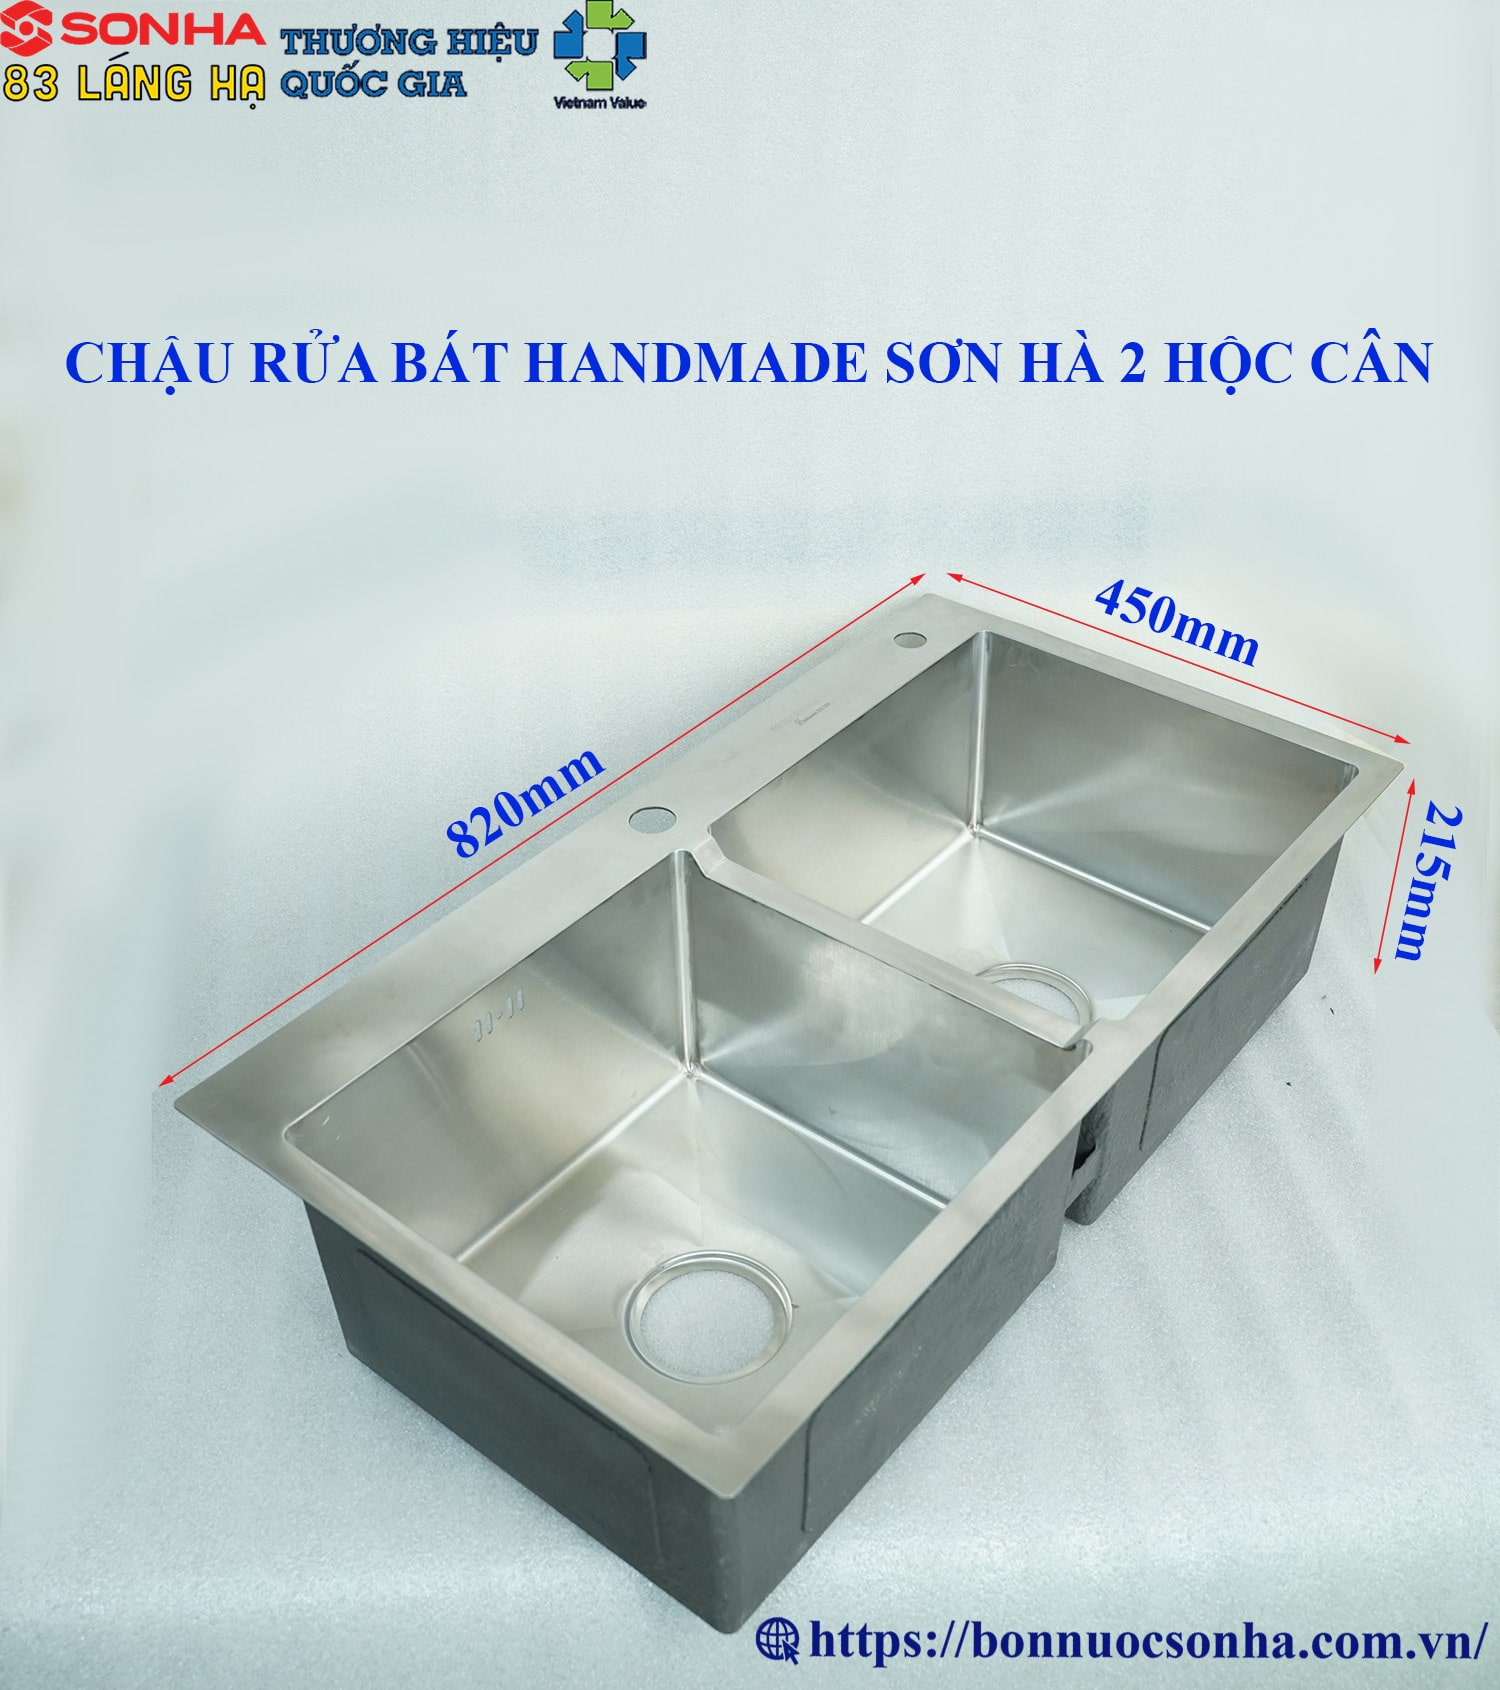 Chau Rua Handmade Son Ha 12 2 Hoc Can